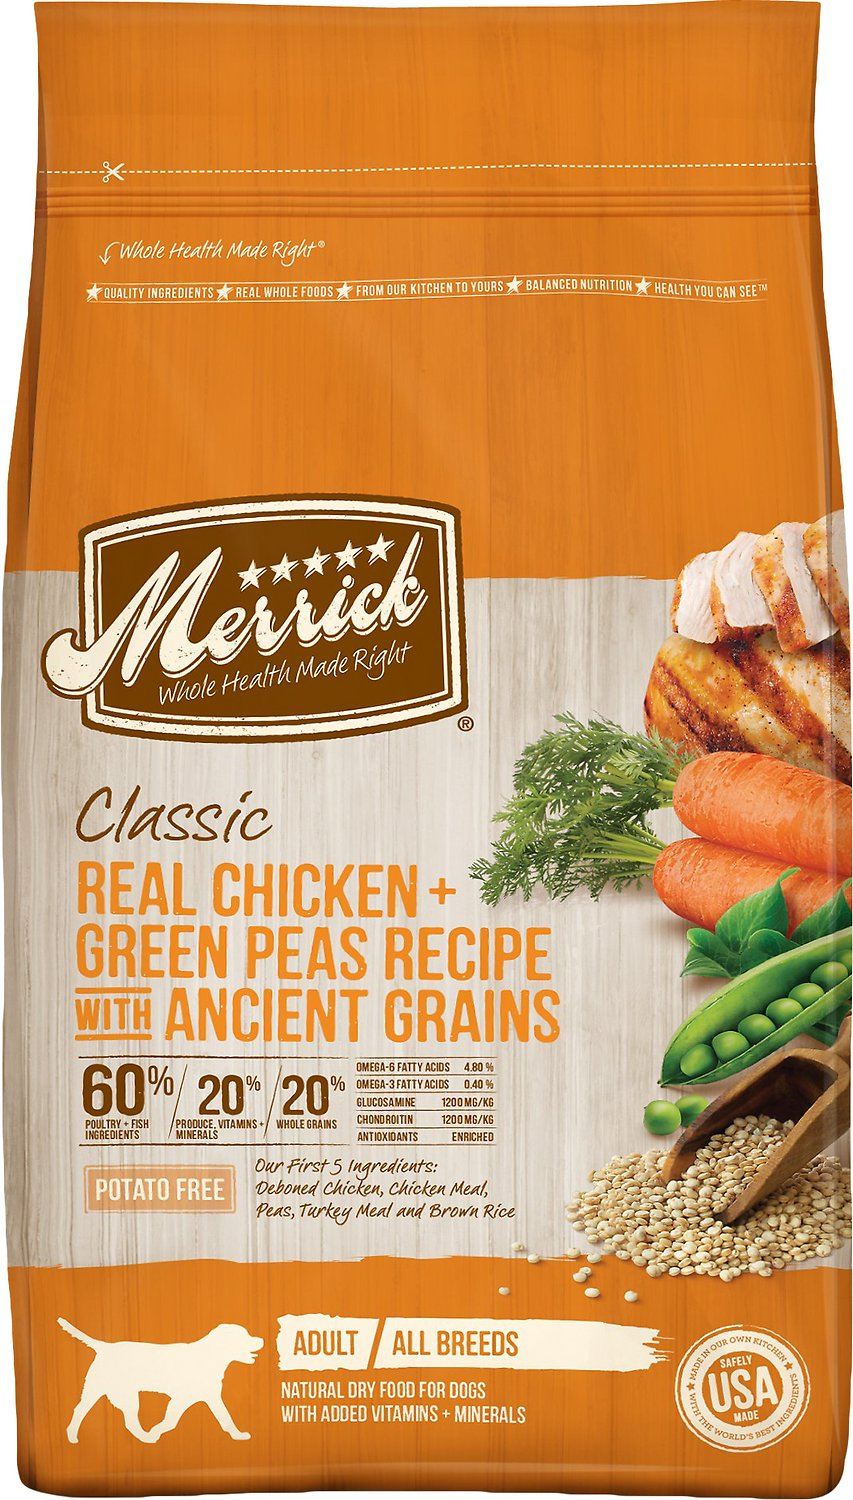 Merrick Classic Real Chicken + Green Peas Recipe with Ancient Grains Adult Dry Dog Food Image